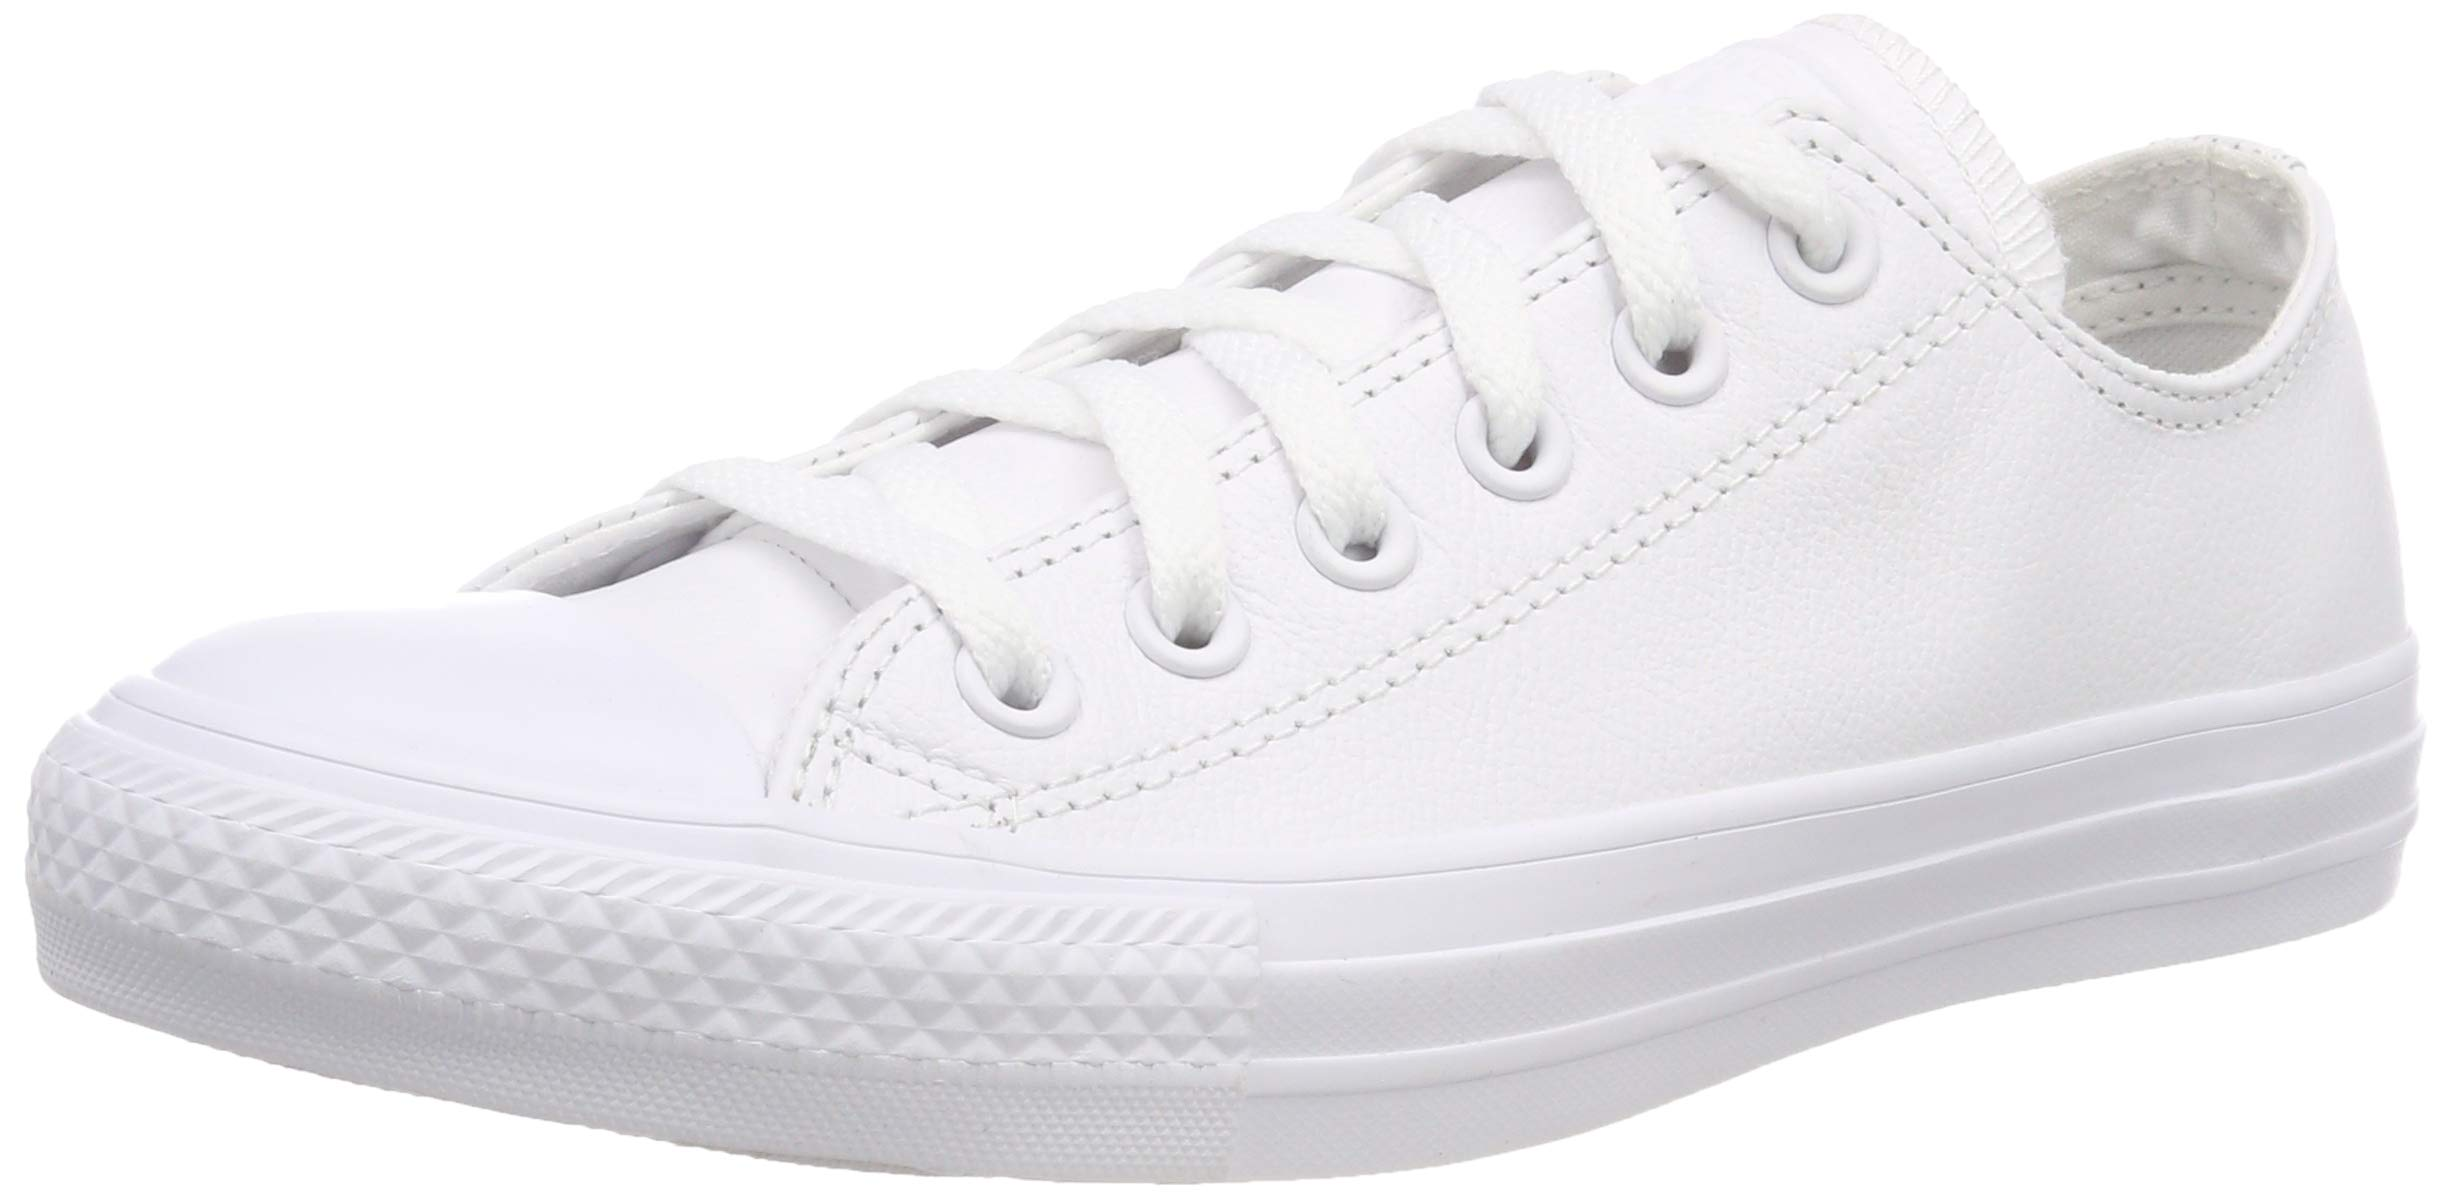 a0432ab39595 Galleon - Converse Unisex Chuck Taylor All Star Ox Low Top Classic White  Leather Sneakers - 8 B(M) US Women   6 D(M) US Men